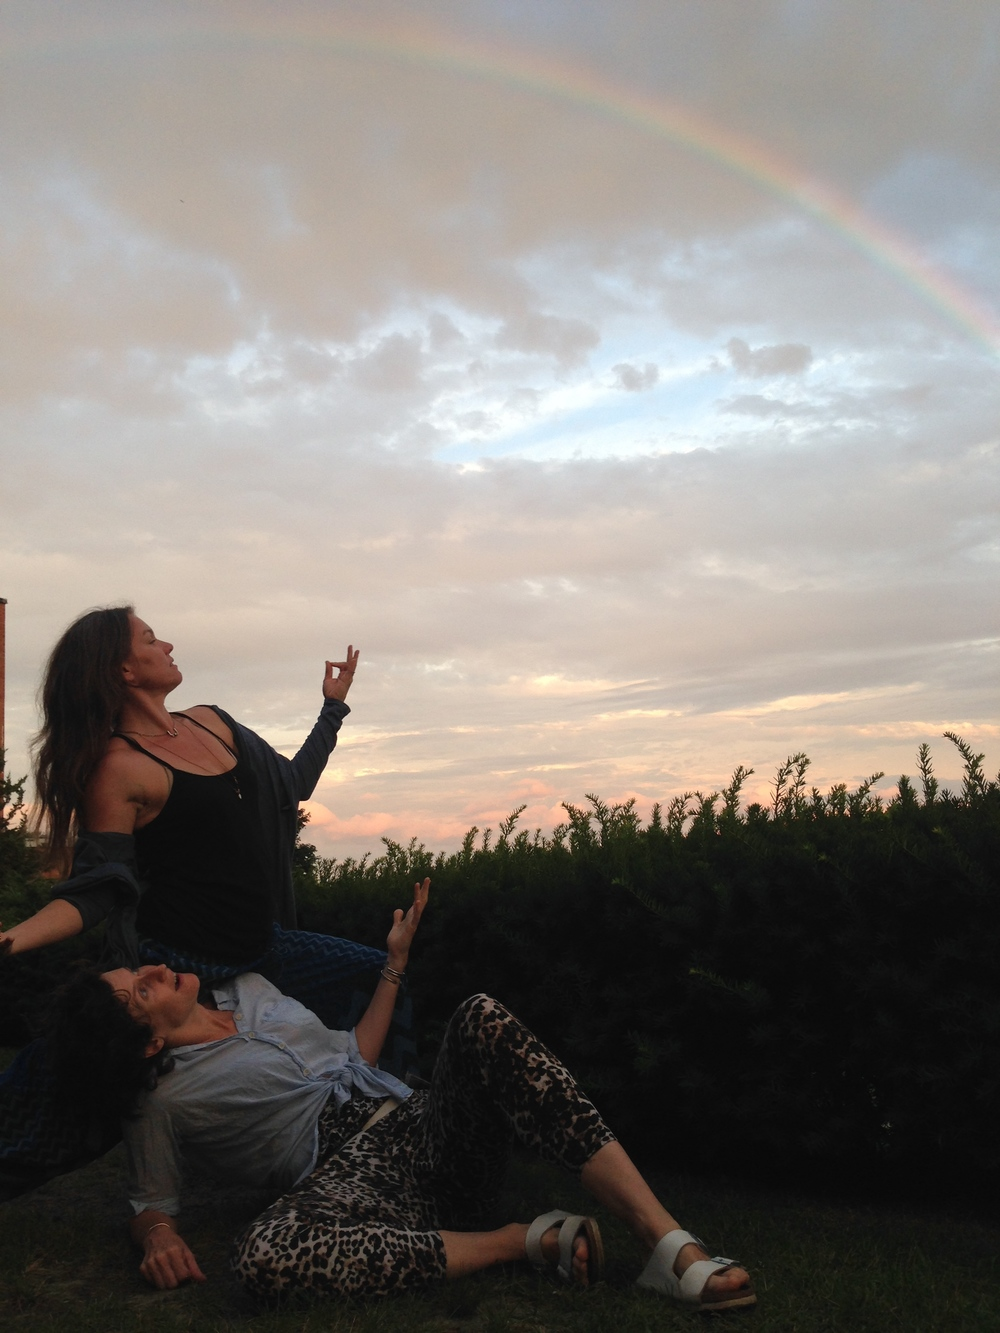 Erin & Alex & a Rainbow